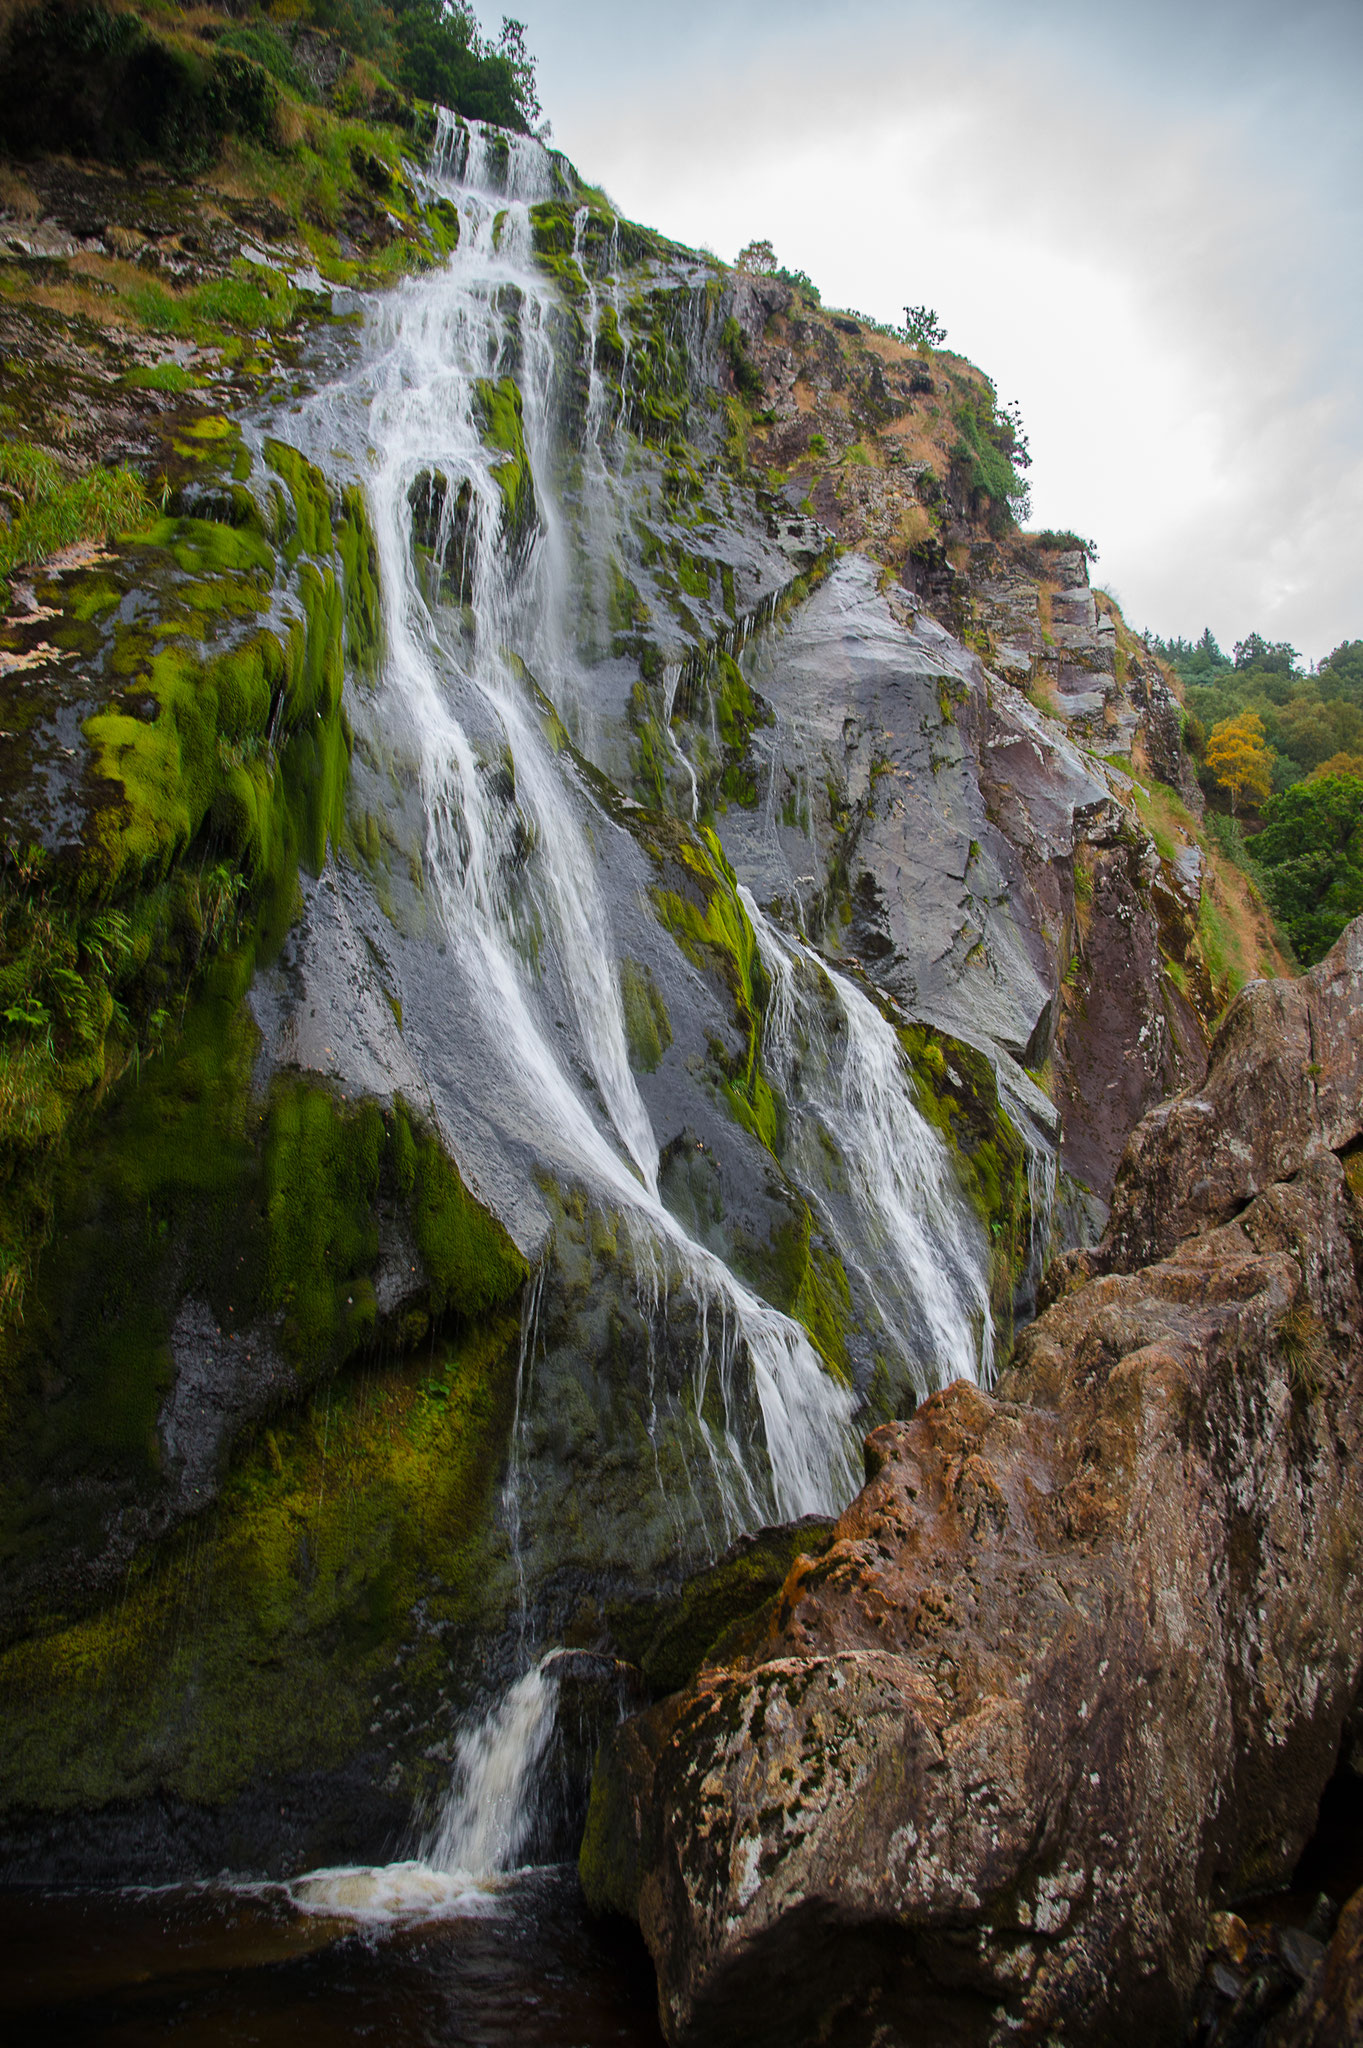 _D4S7146_Powercourt-Cascade de Waterford-Wiclow